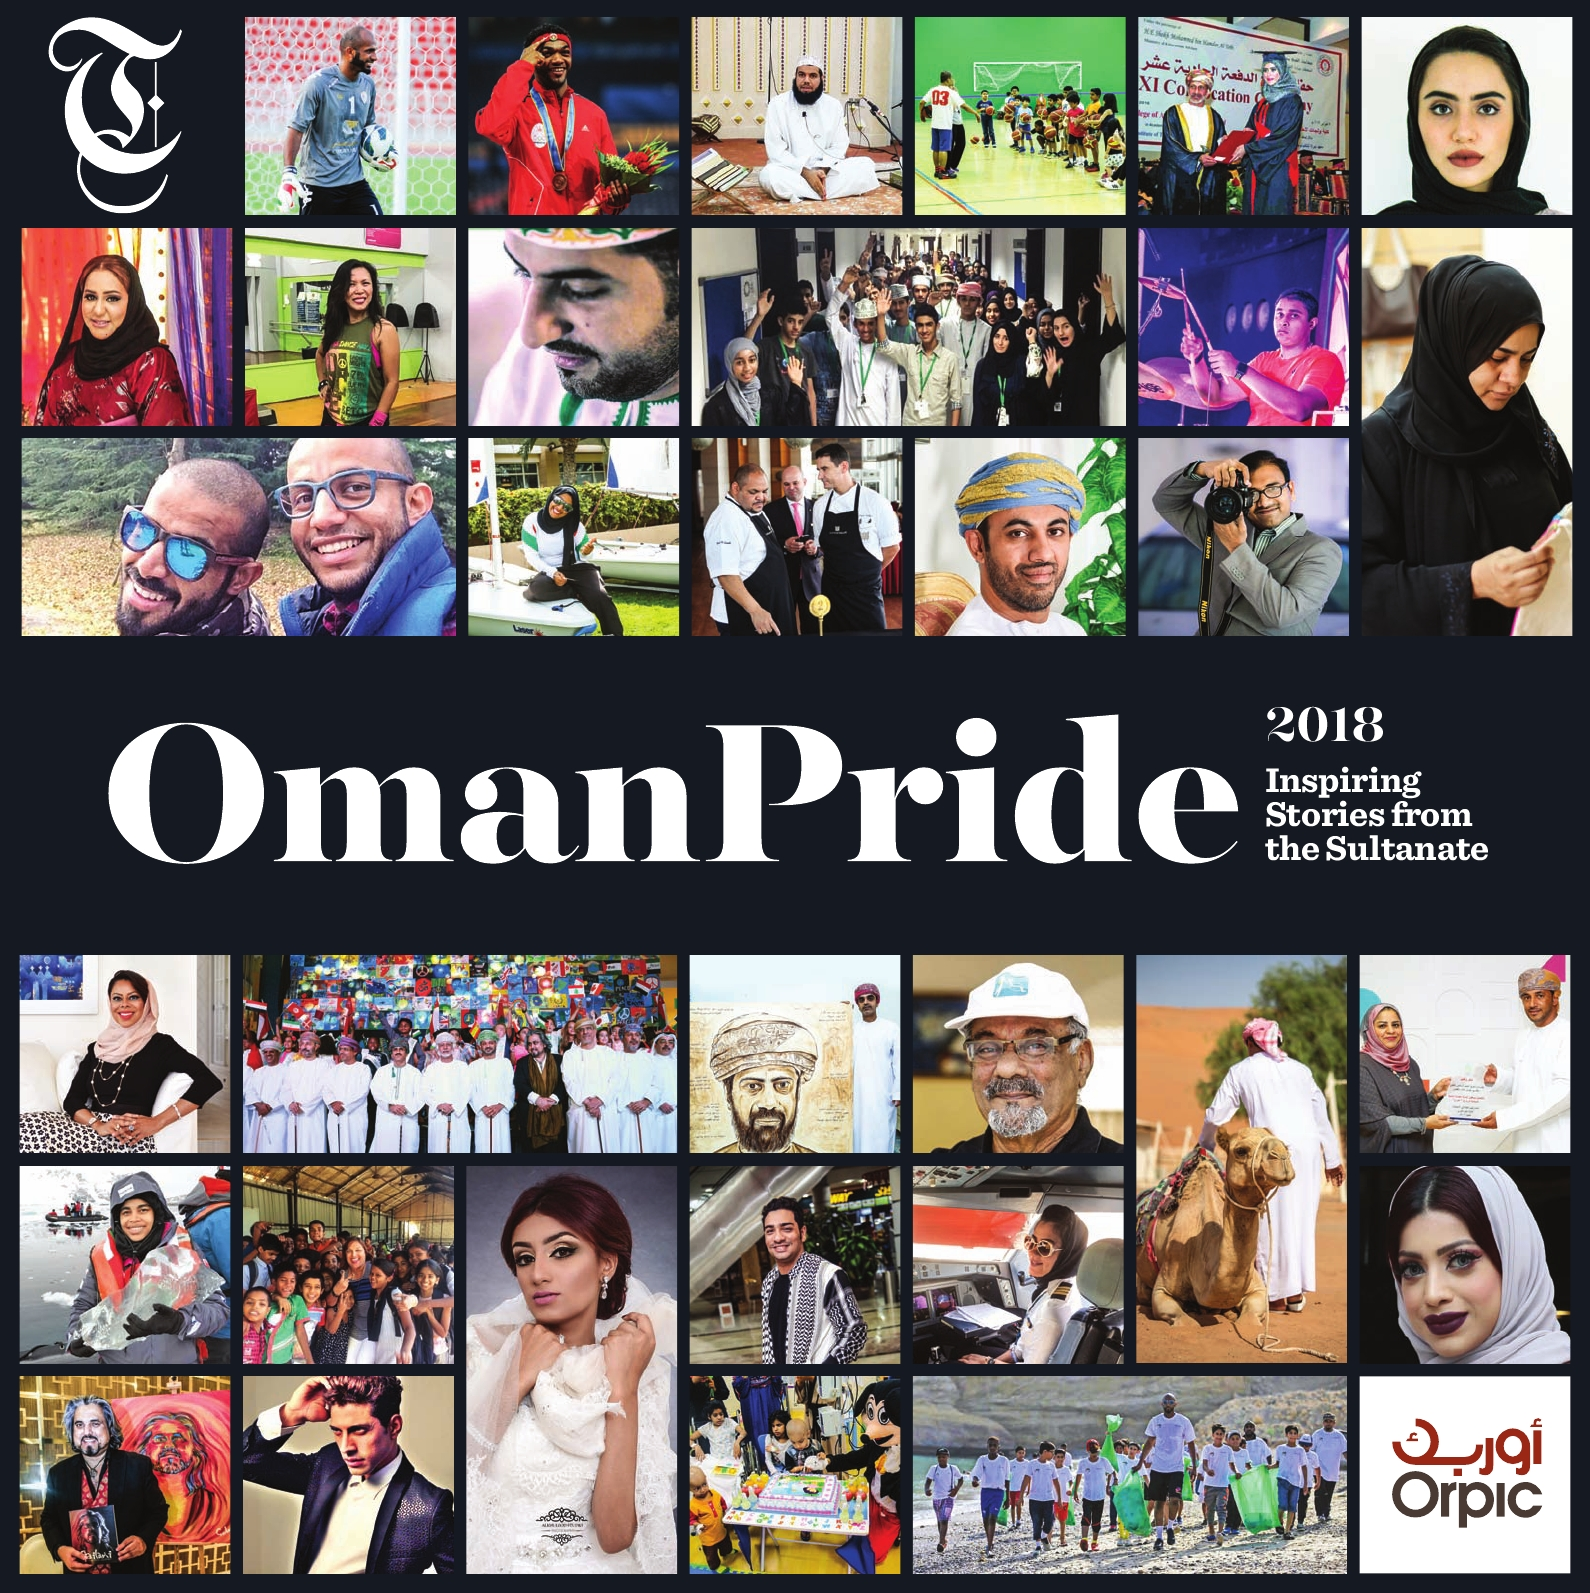 #OmanPride: Showcasing the finest of Oman's humanity